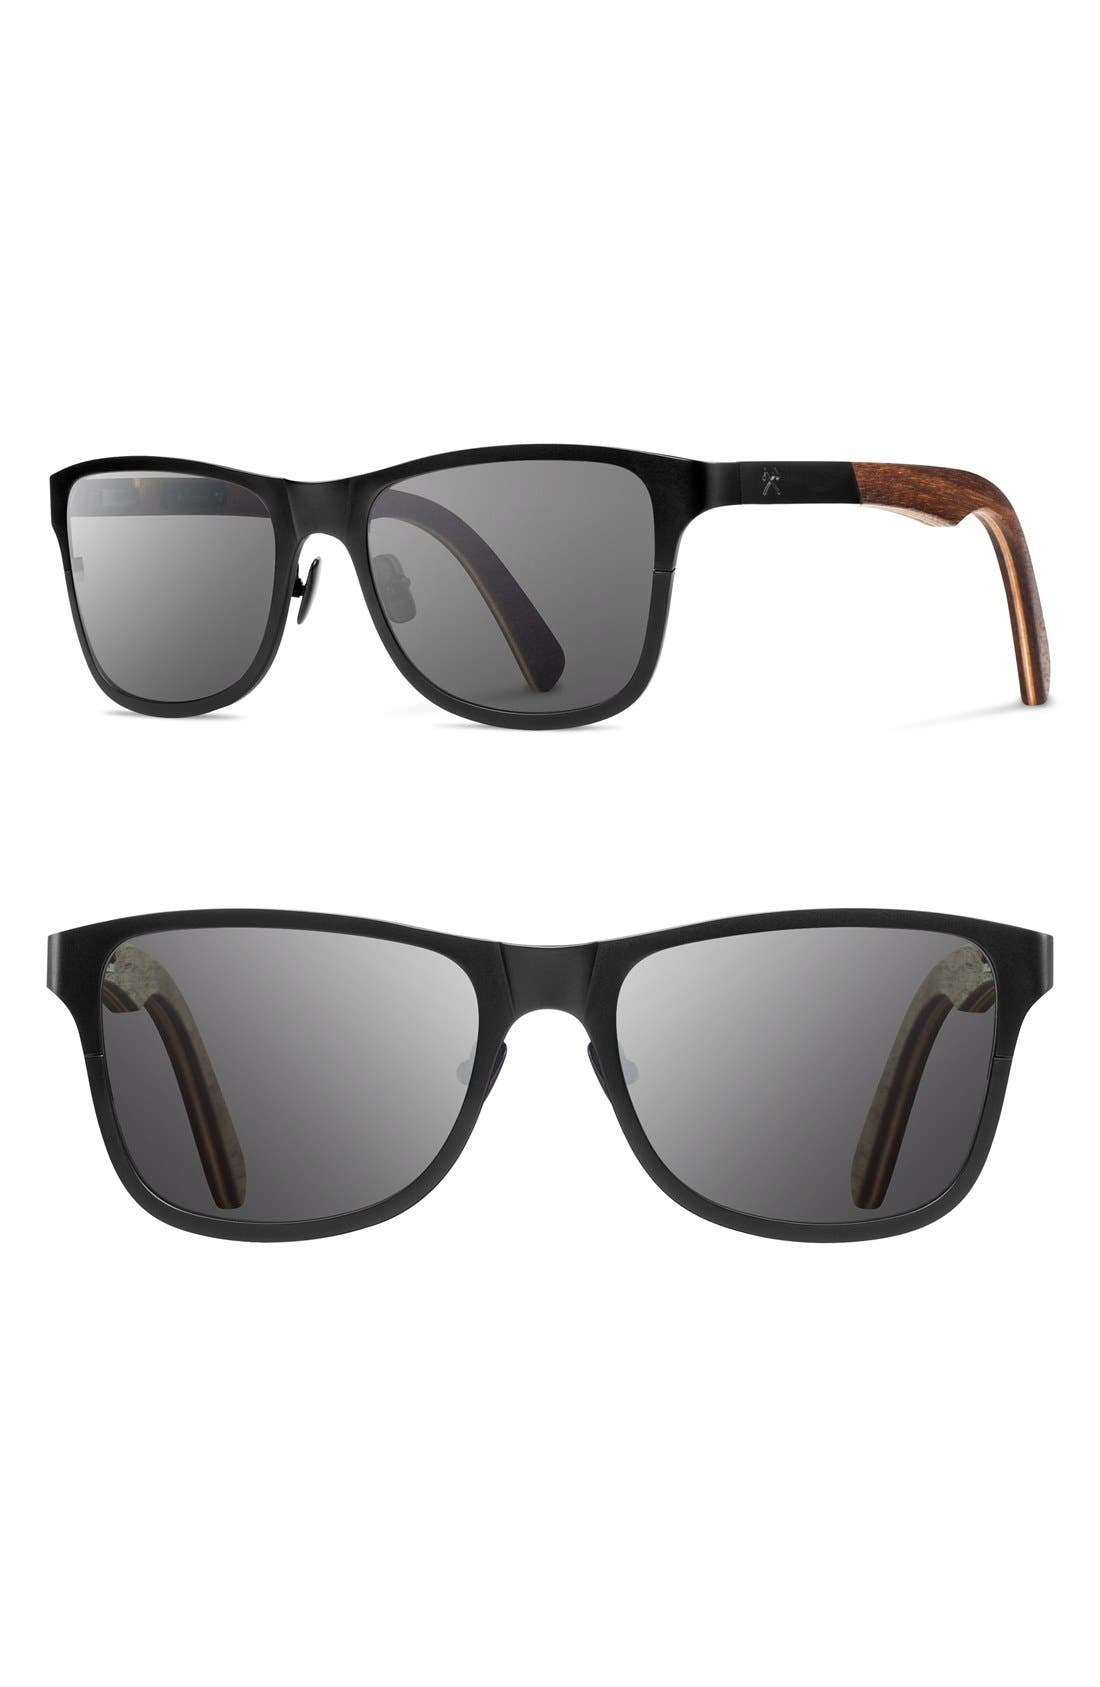 'Canby' 54mm Titanium & Wood Sunglasses,                             Main thumbnail 1, color,